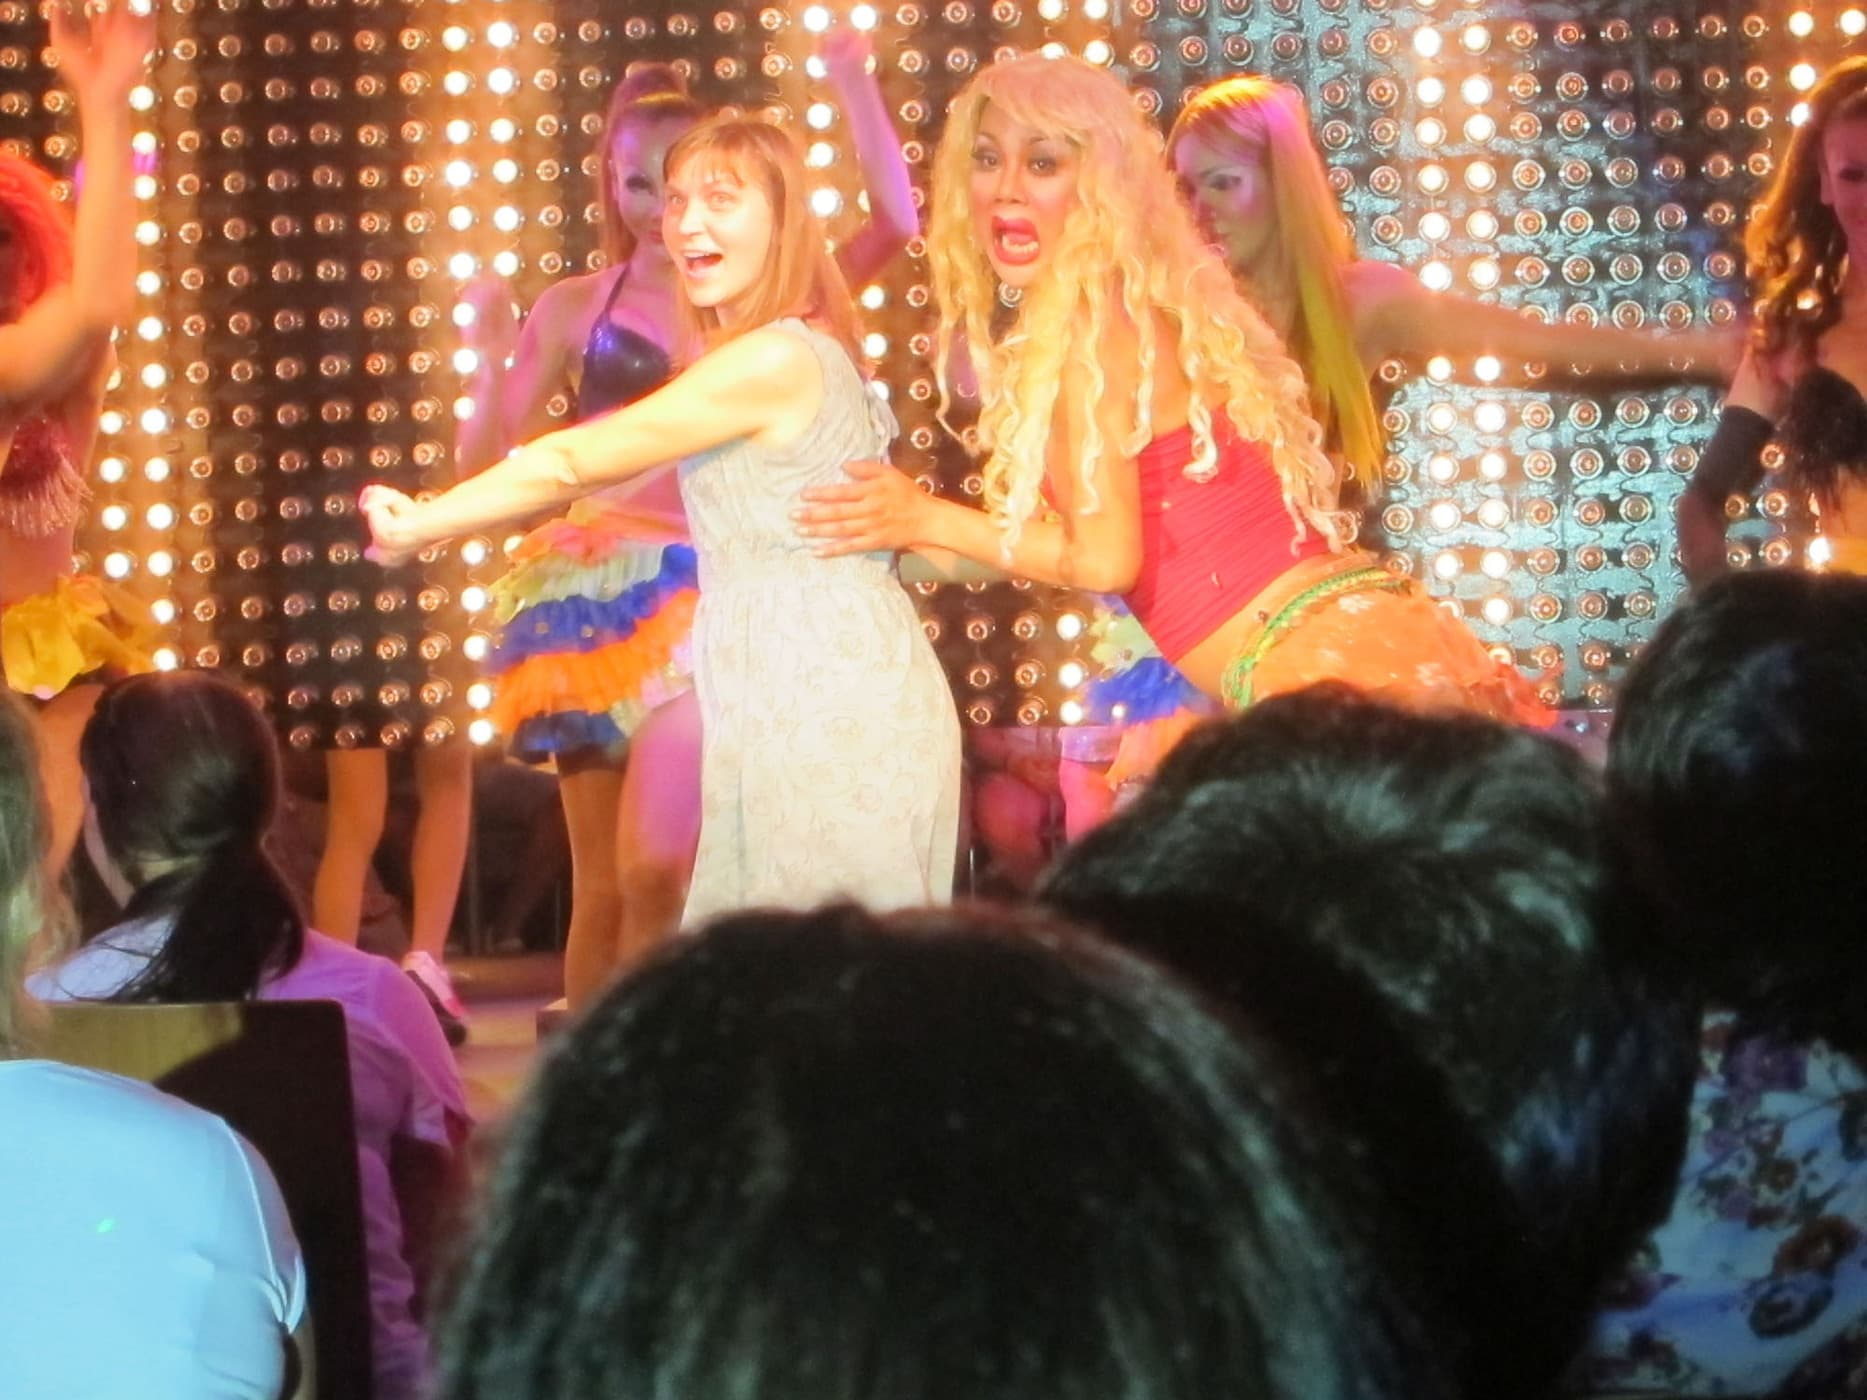 Me in a Ladyboy show.